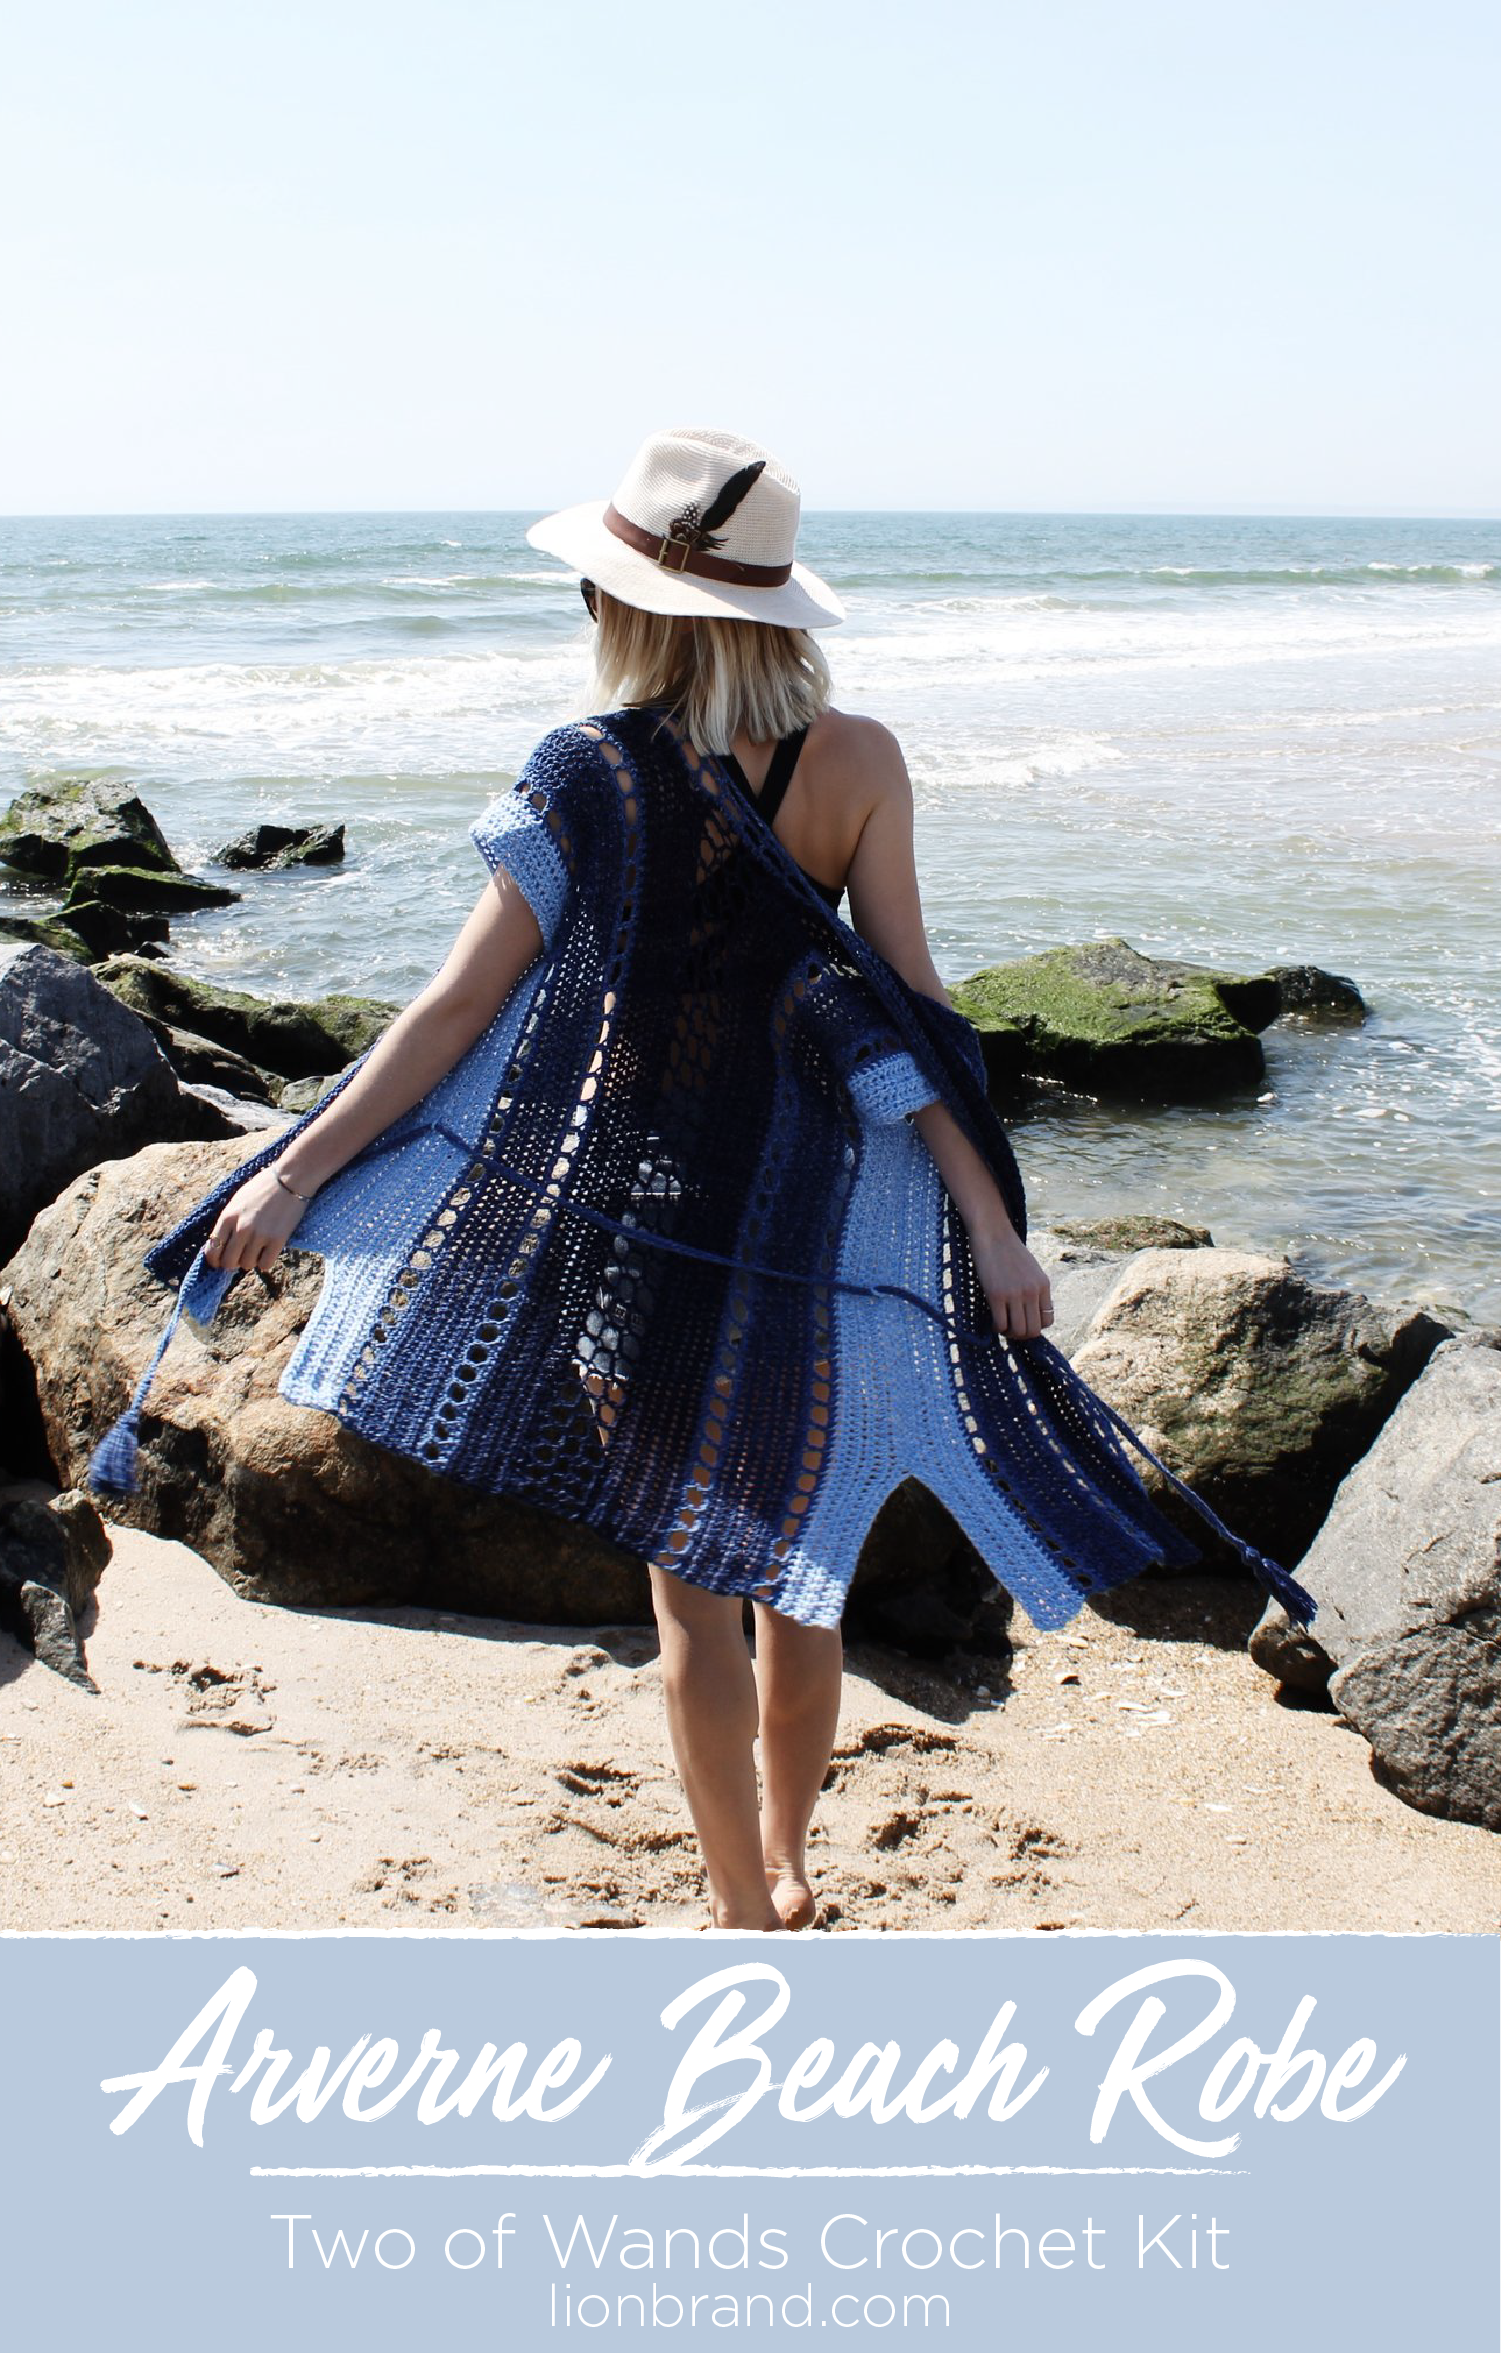 f9b349b7b2 You ll get some serious beach babe vibes with this beautiful crochet Arverne  Beach Robe kit by Two of Wands. Lightweight Jeans yarn in stunning shades  of ...